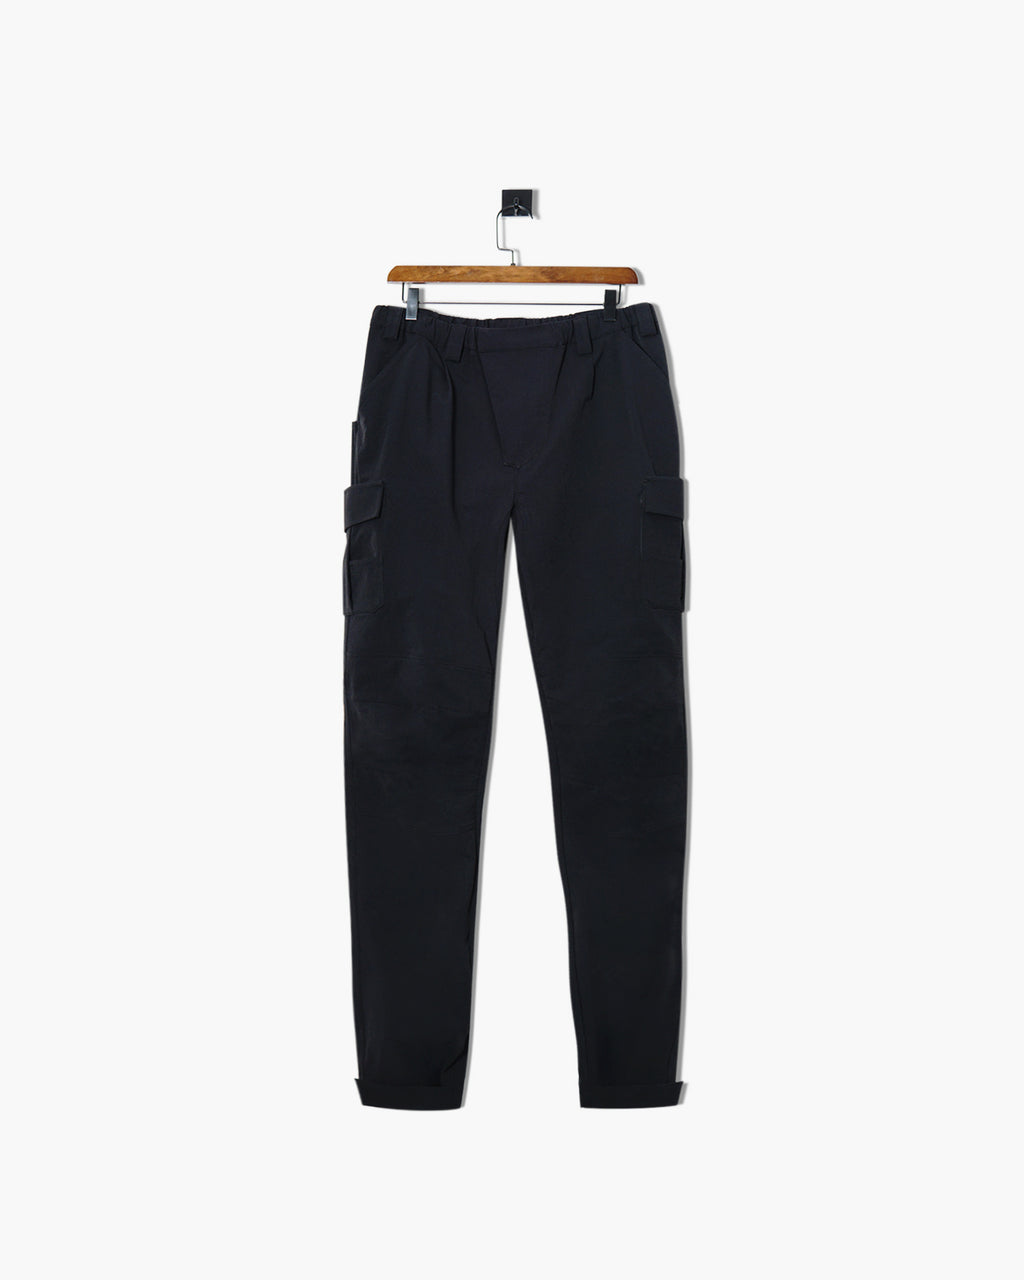 ROSEN-X Thebe Trousers in Black 2L Nylon Sz 4-5